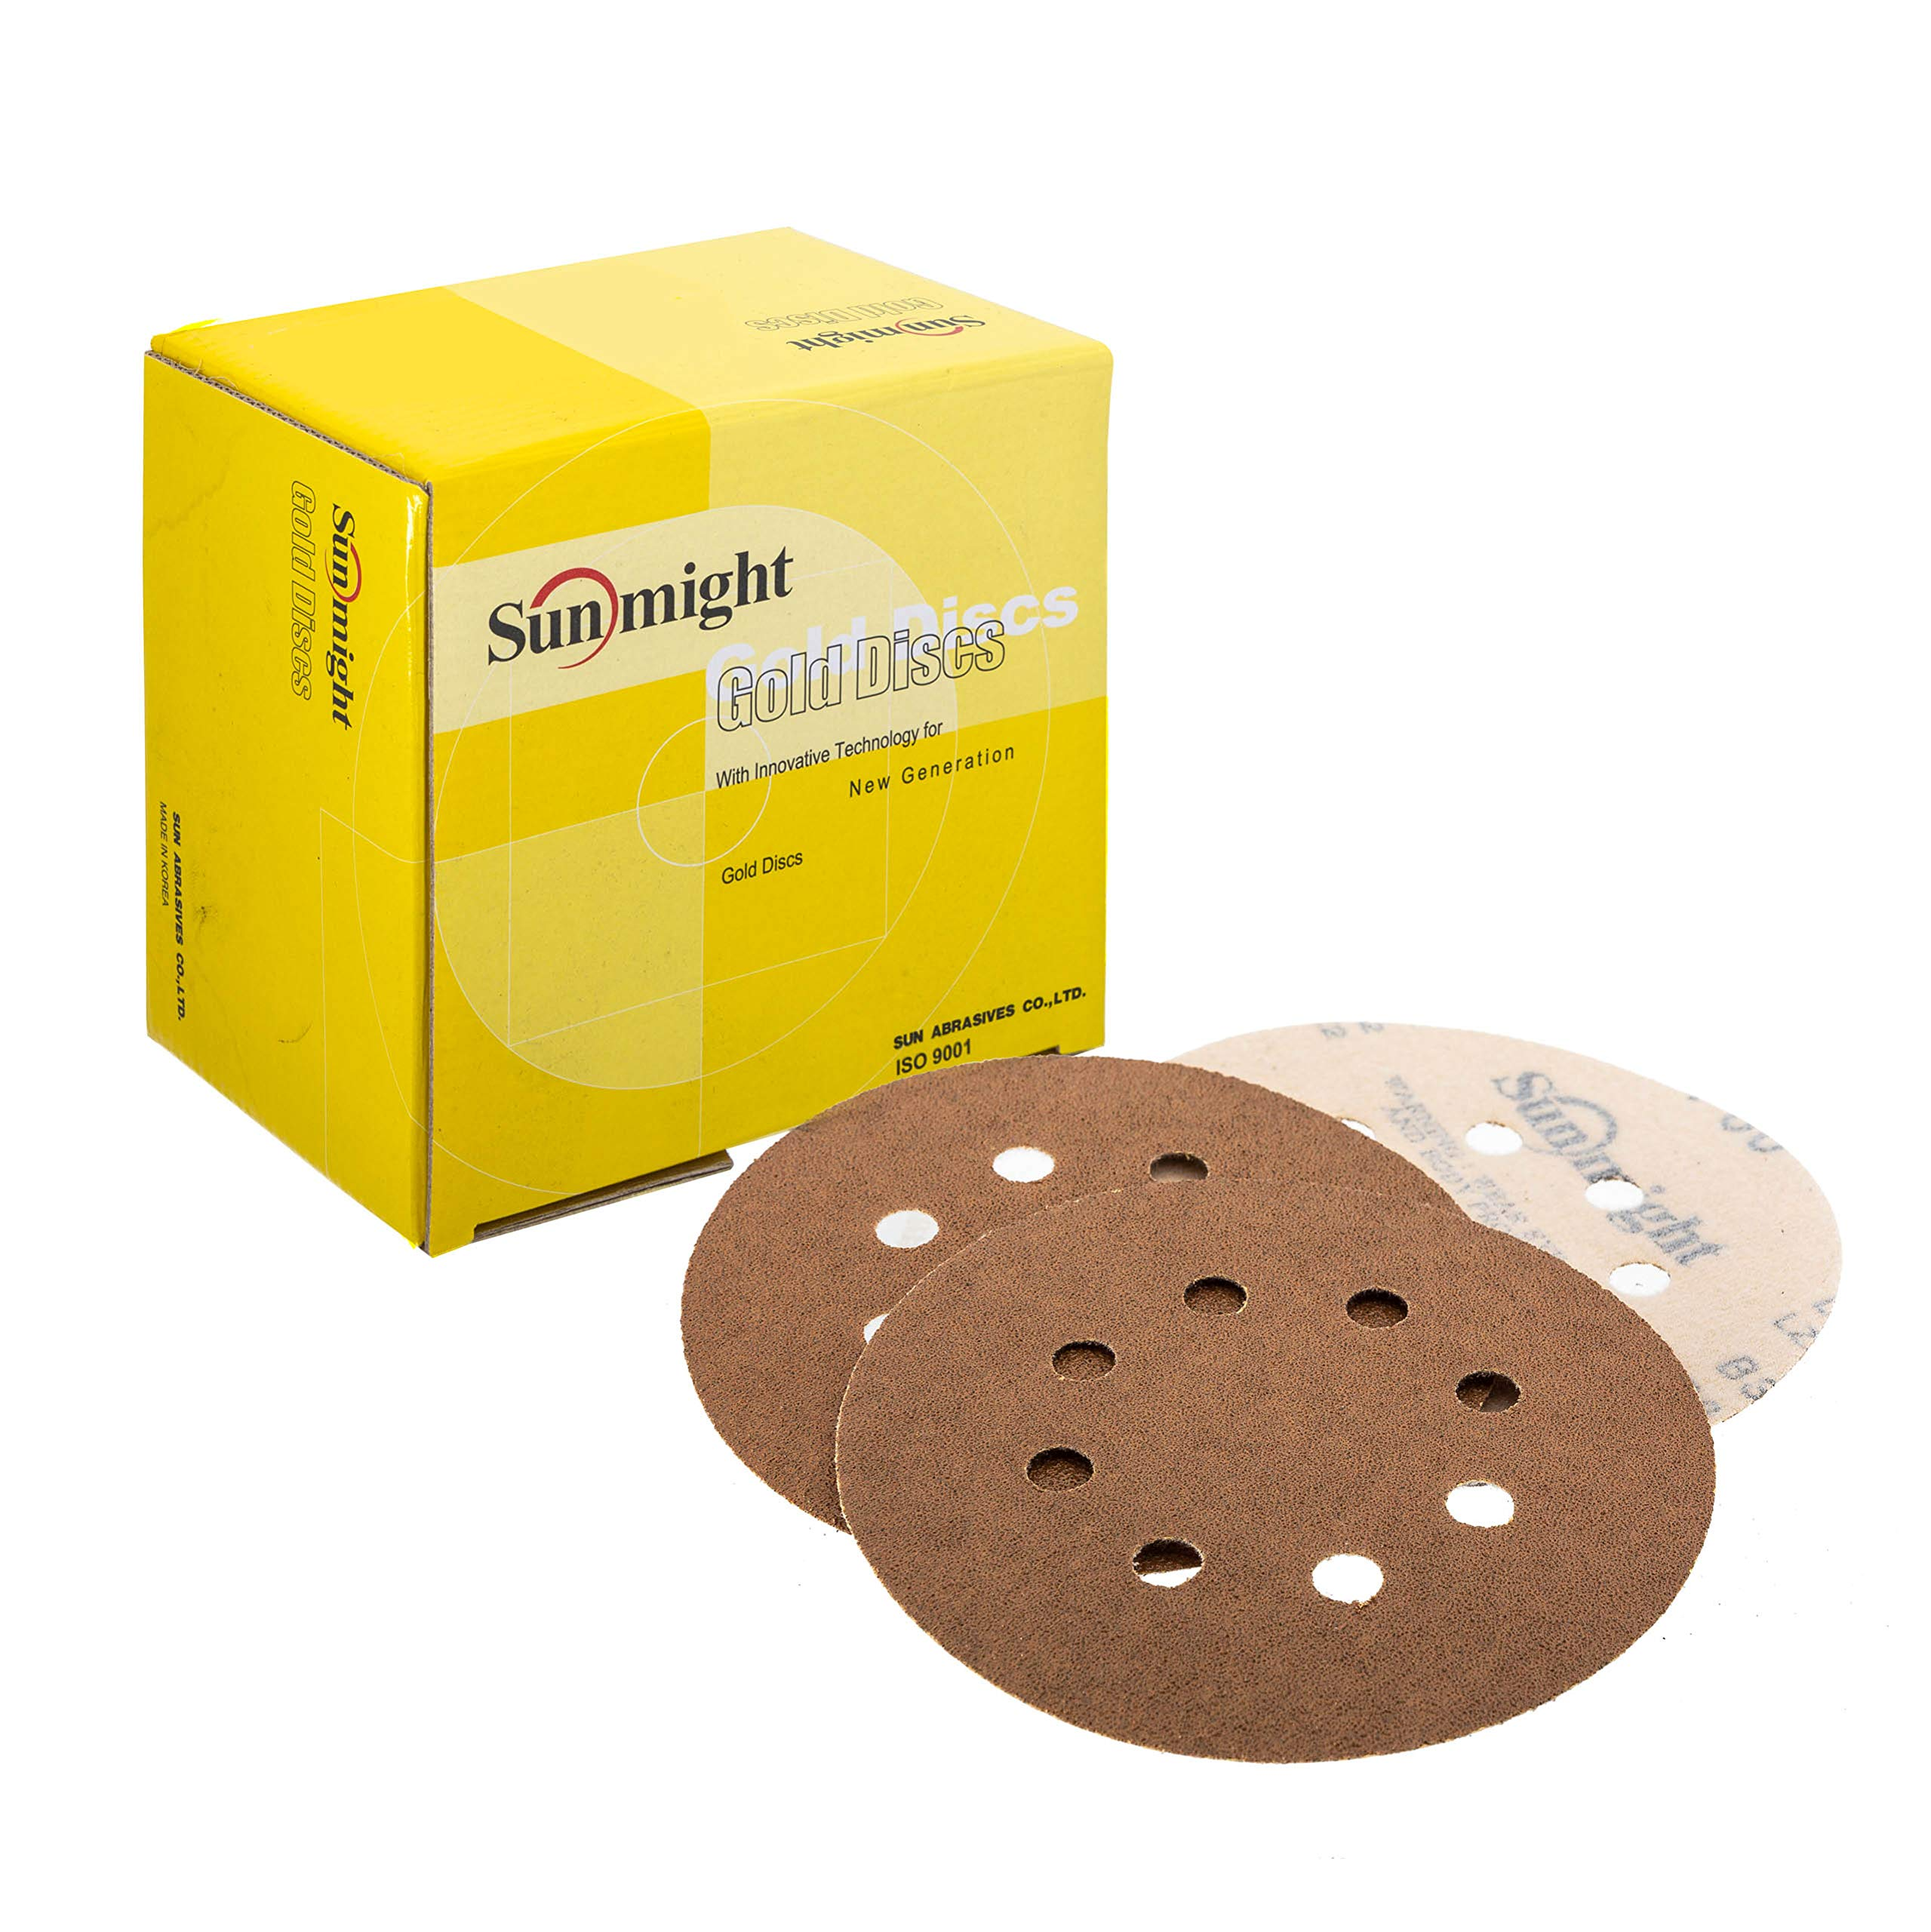 Sunmight 58106 1 Pack Velcro Disc Grit (Gold - 5'' 8 Hole 80) by Sunmight